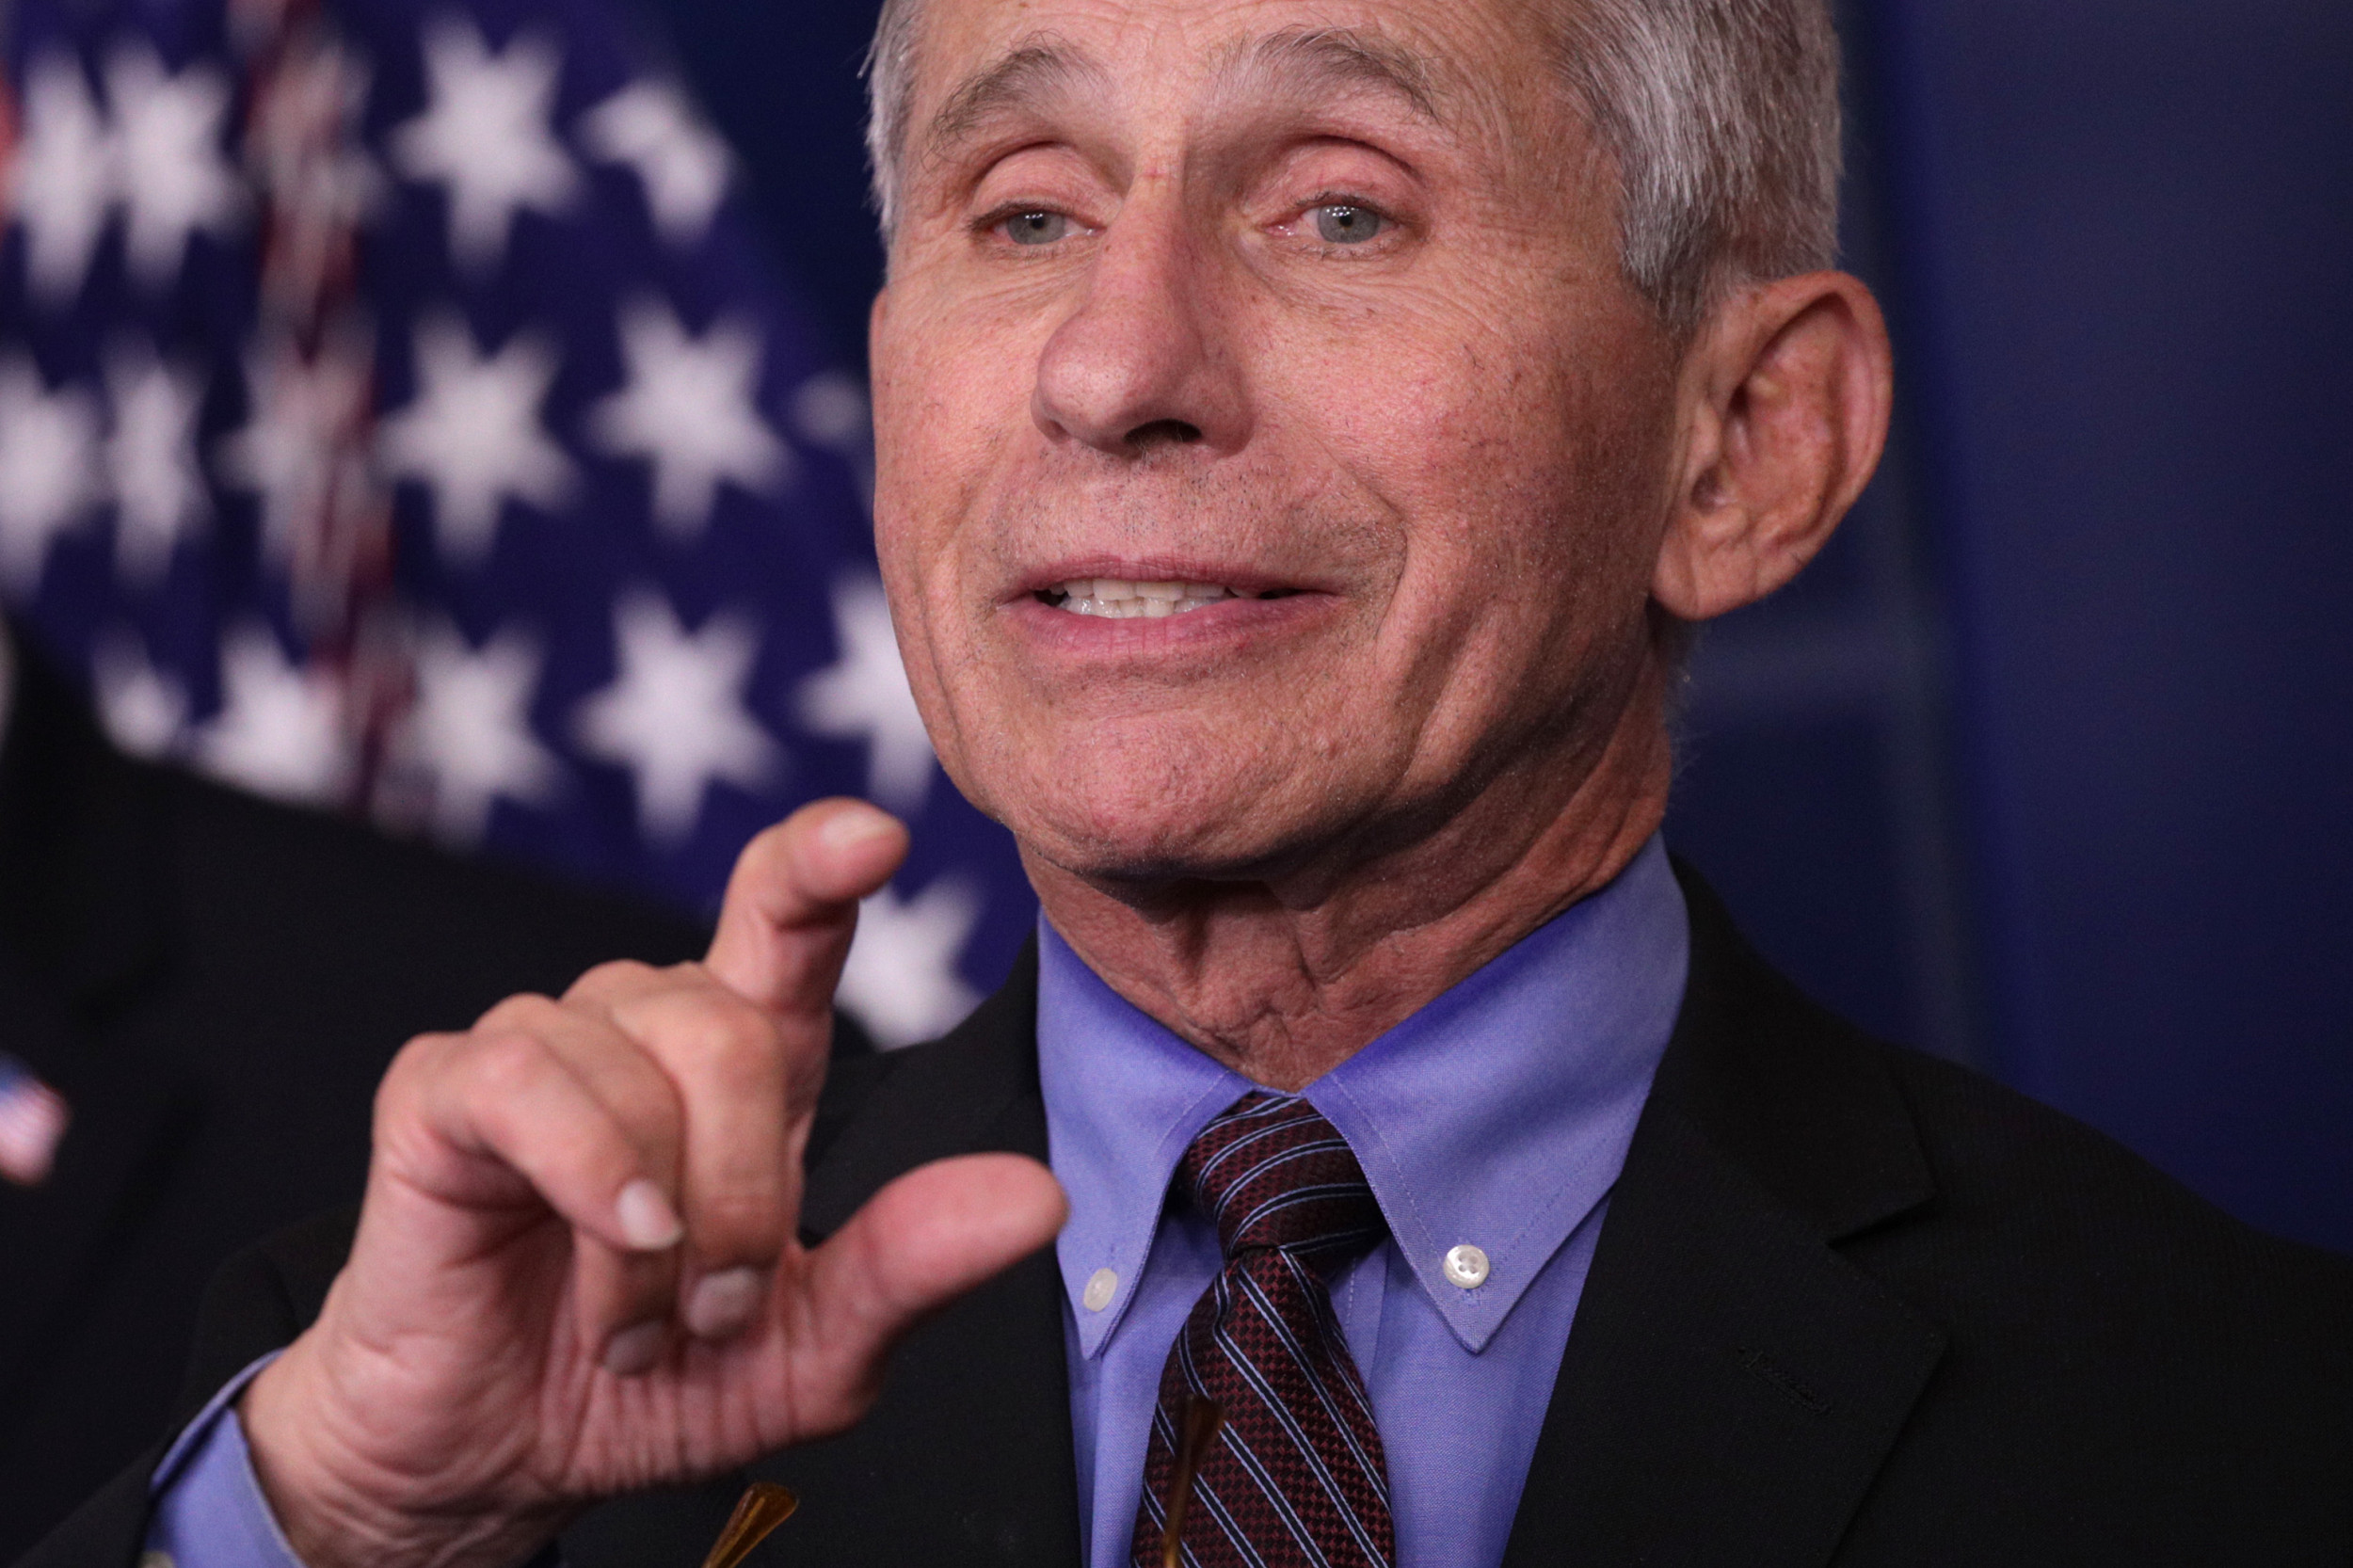 Dr. Fauci Says Coronavirus Antibody Tests Just 'Days Away', Large Number Will Be Available Within a Week